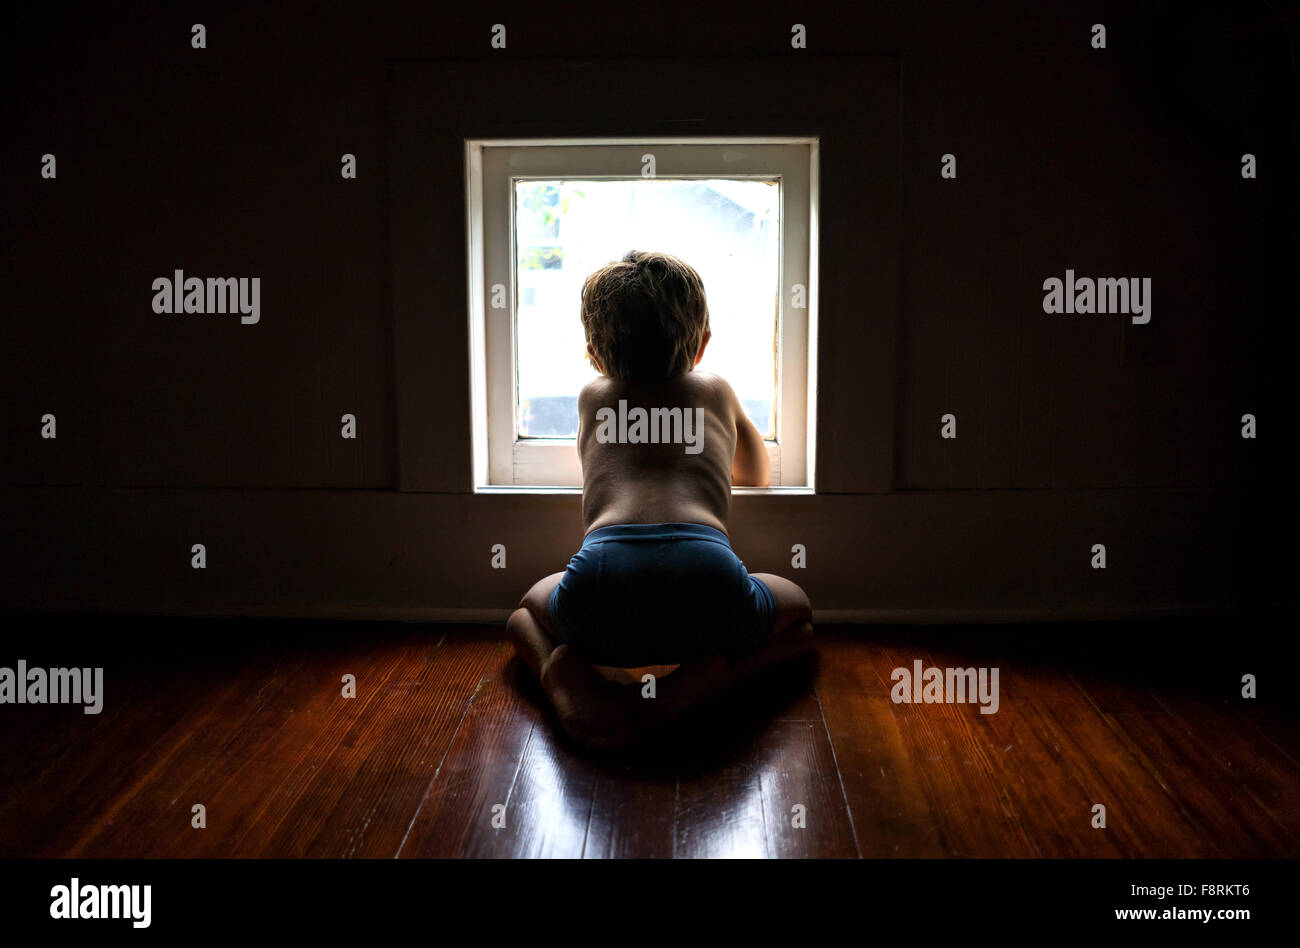 Boy sitting on floor looking out of a window - Stock Image